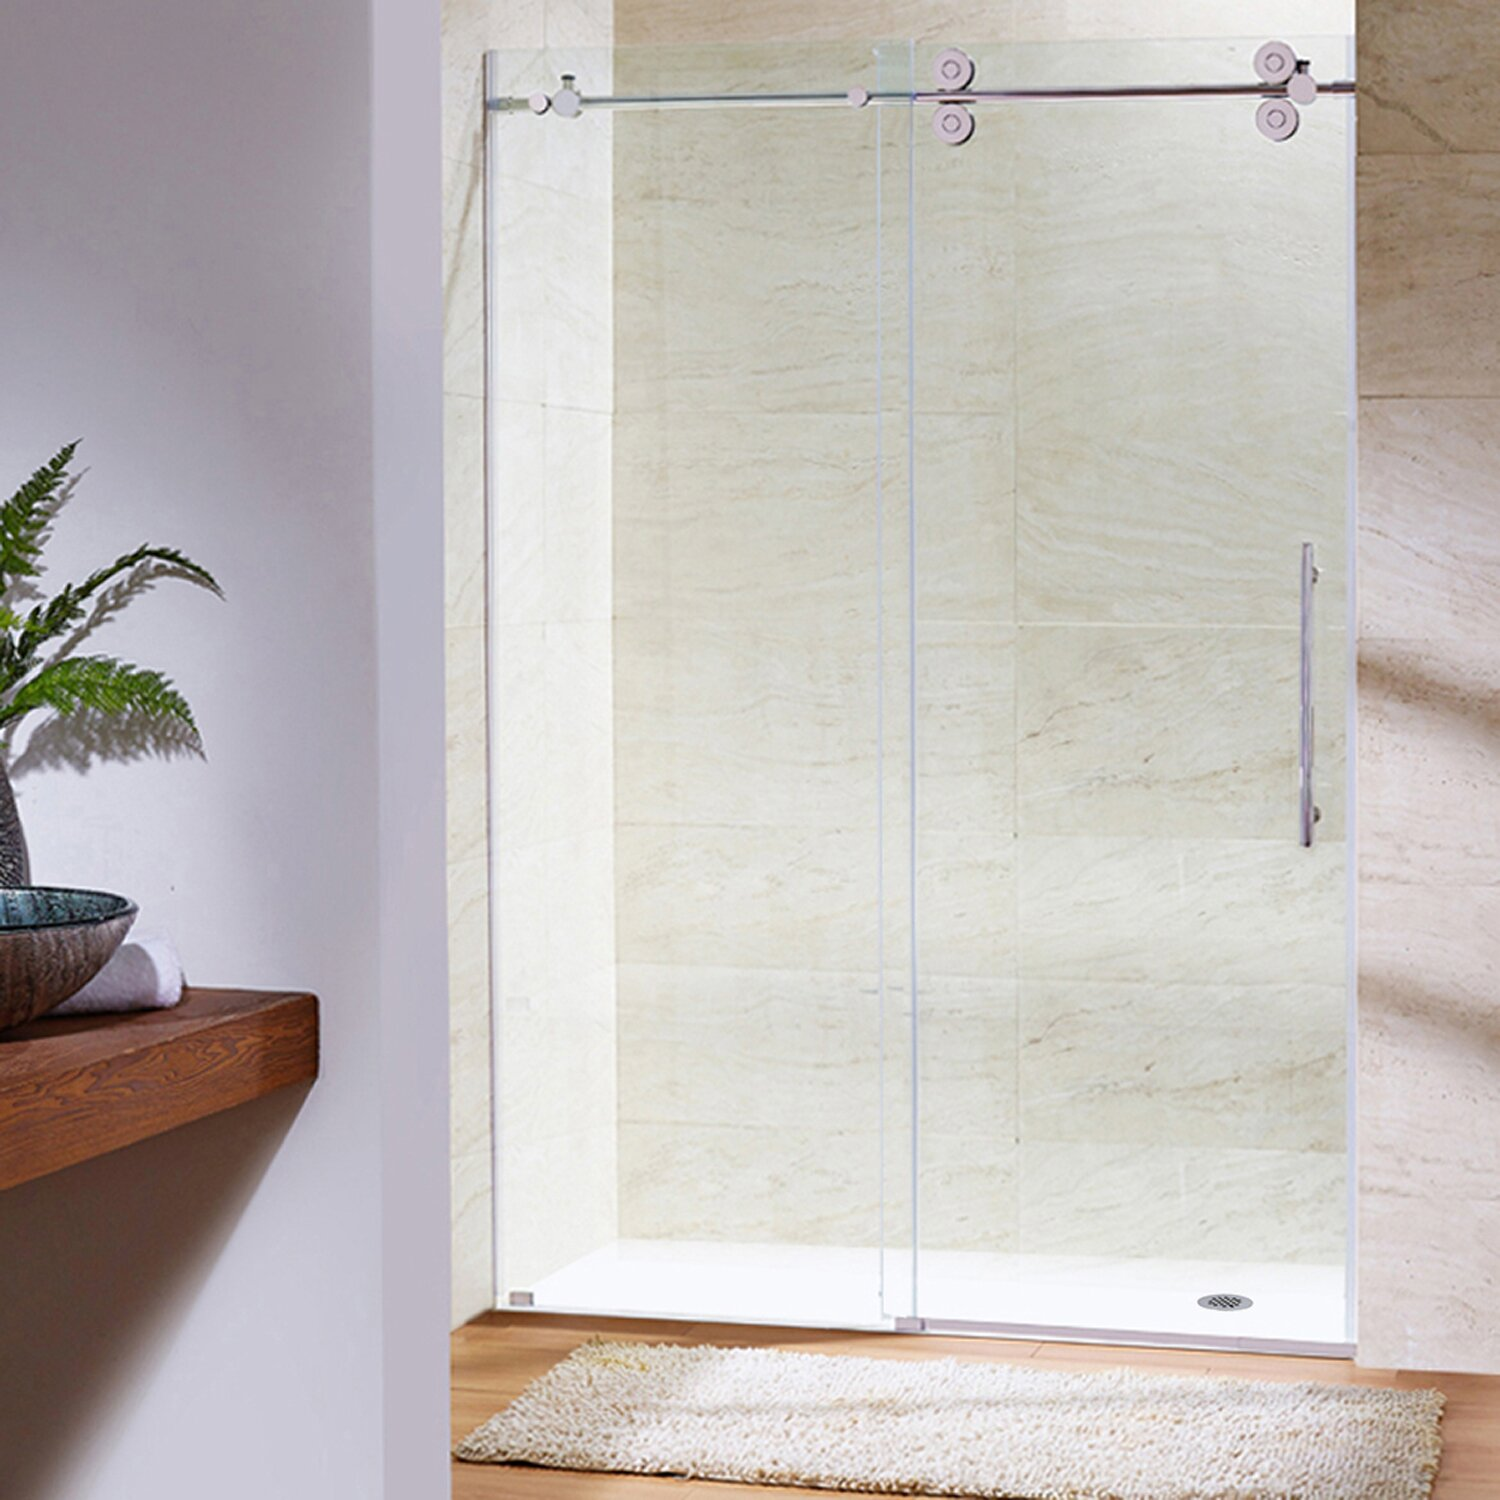 Vigo Elan 60 Quot X 74 Quot Single Sliding Frameless Shower Door